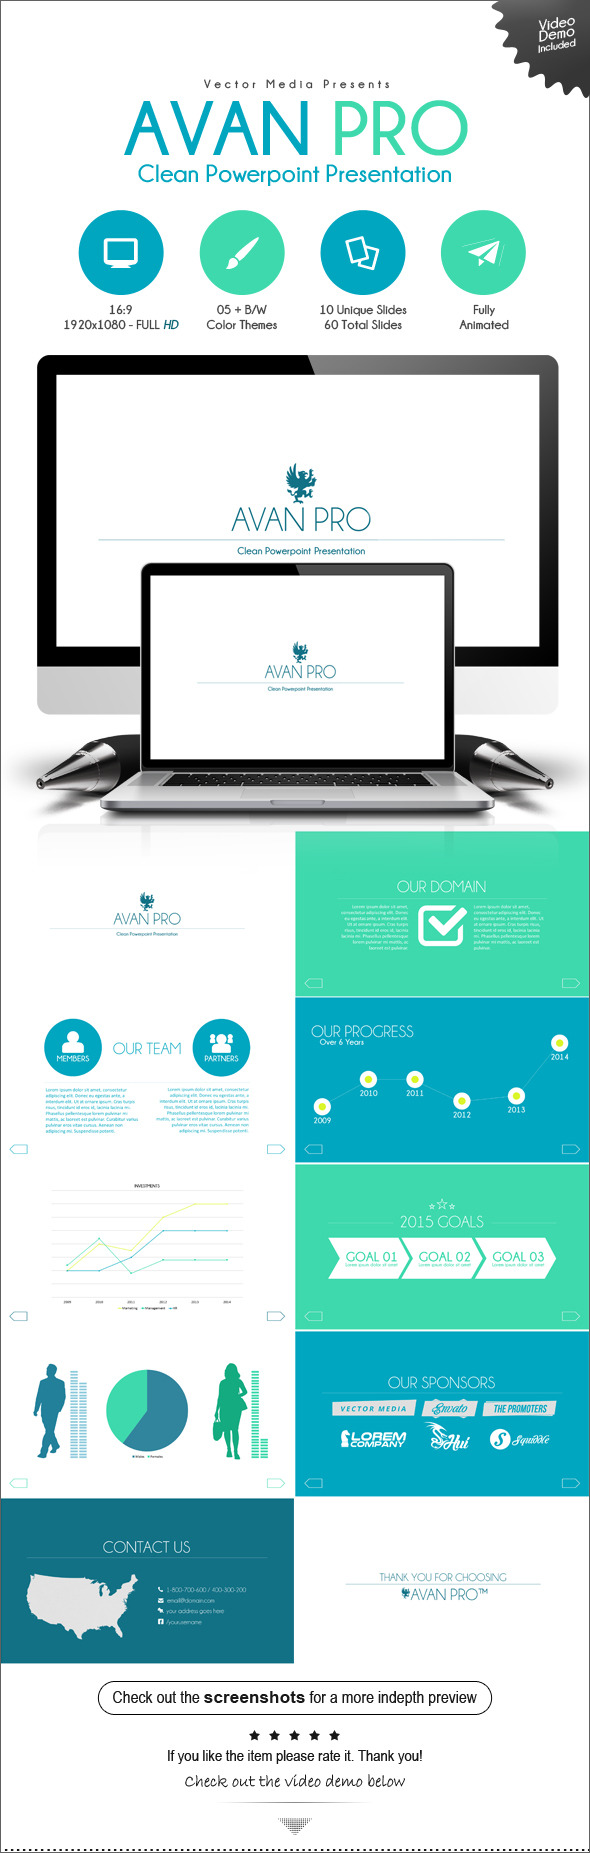 GraphicRiver Avan Pro Powerpoint Presentation 9412950